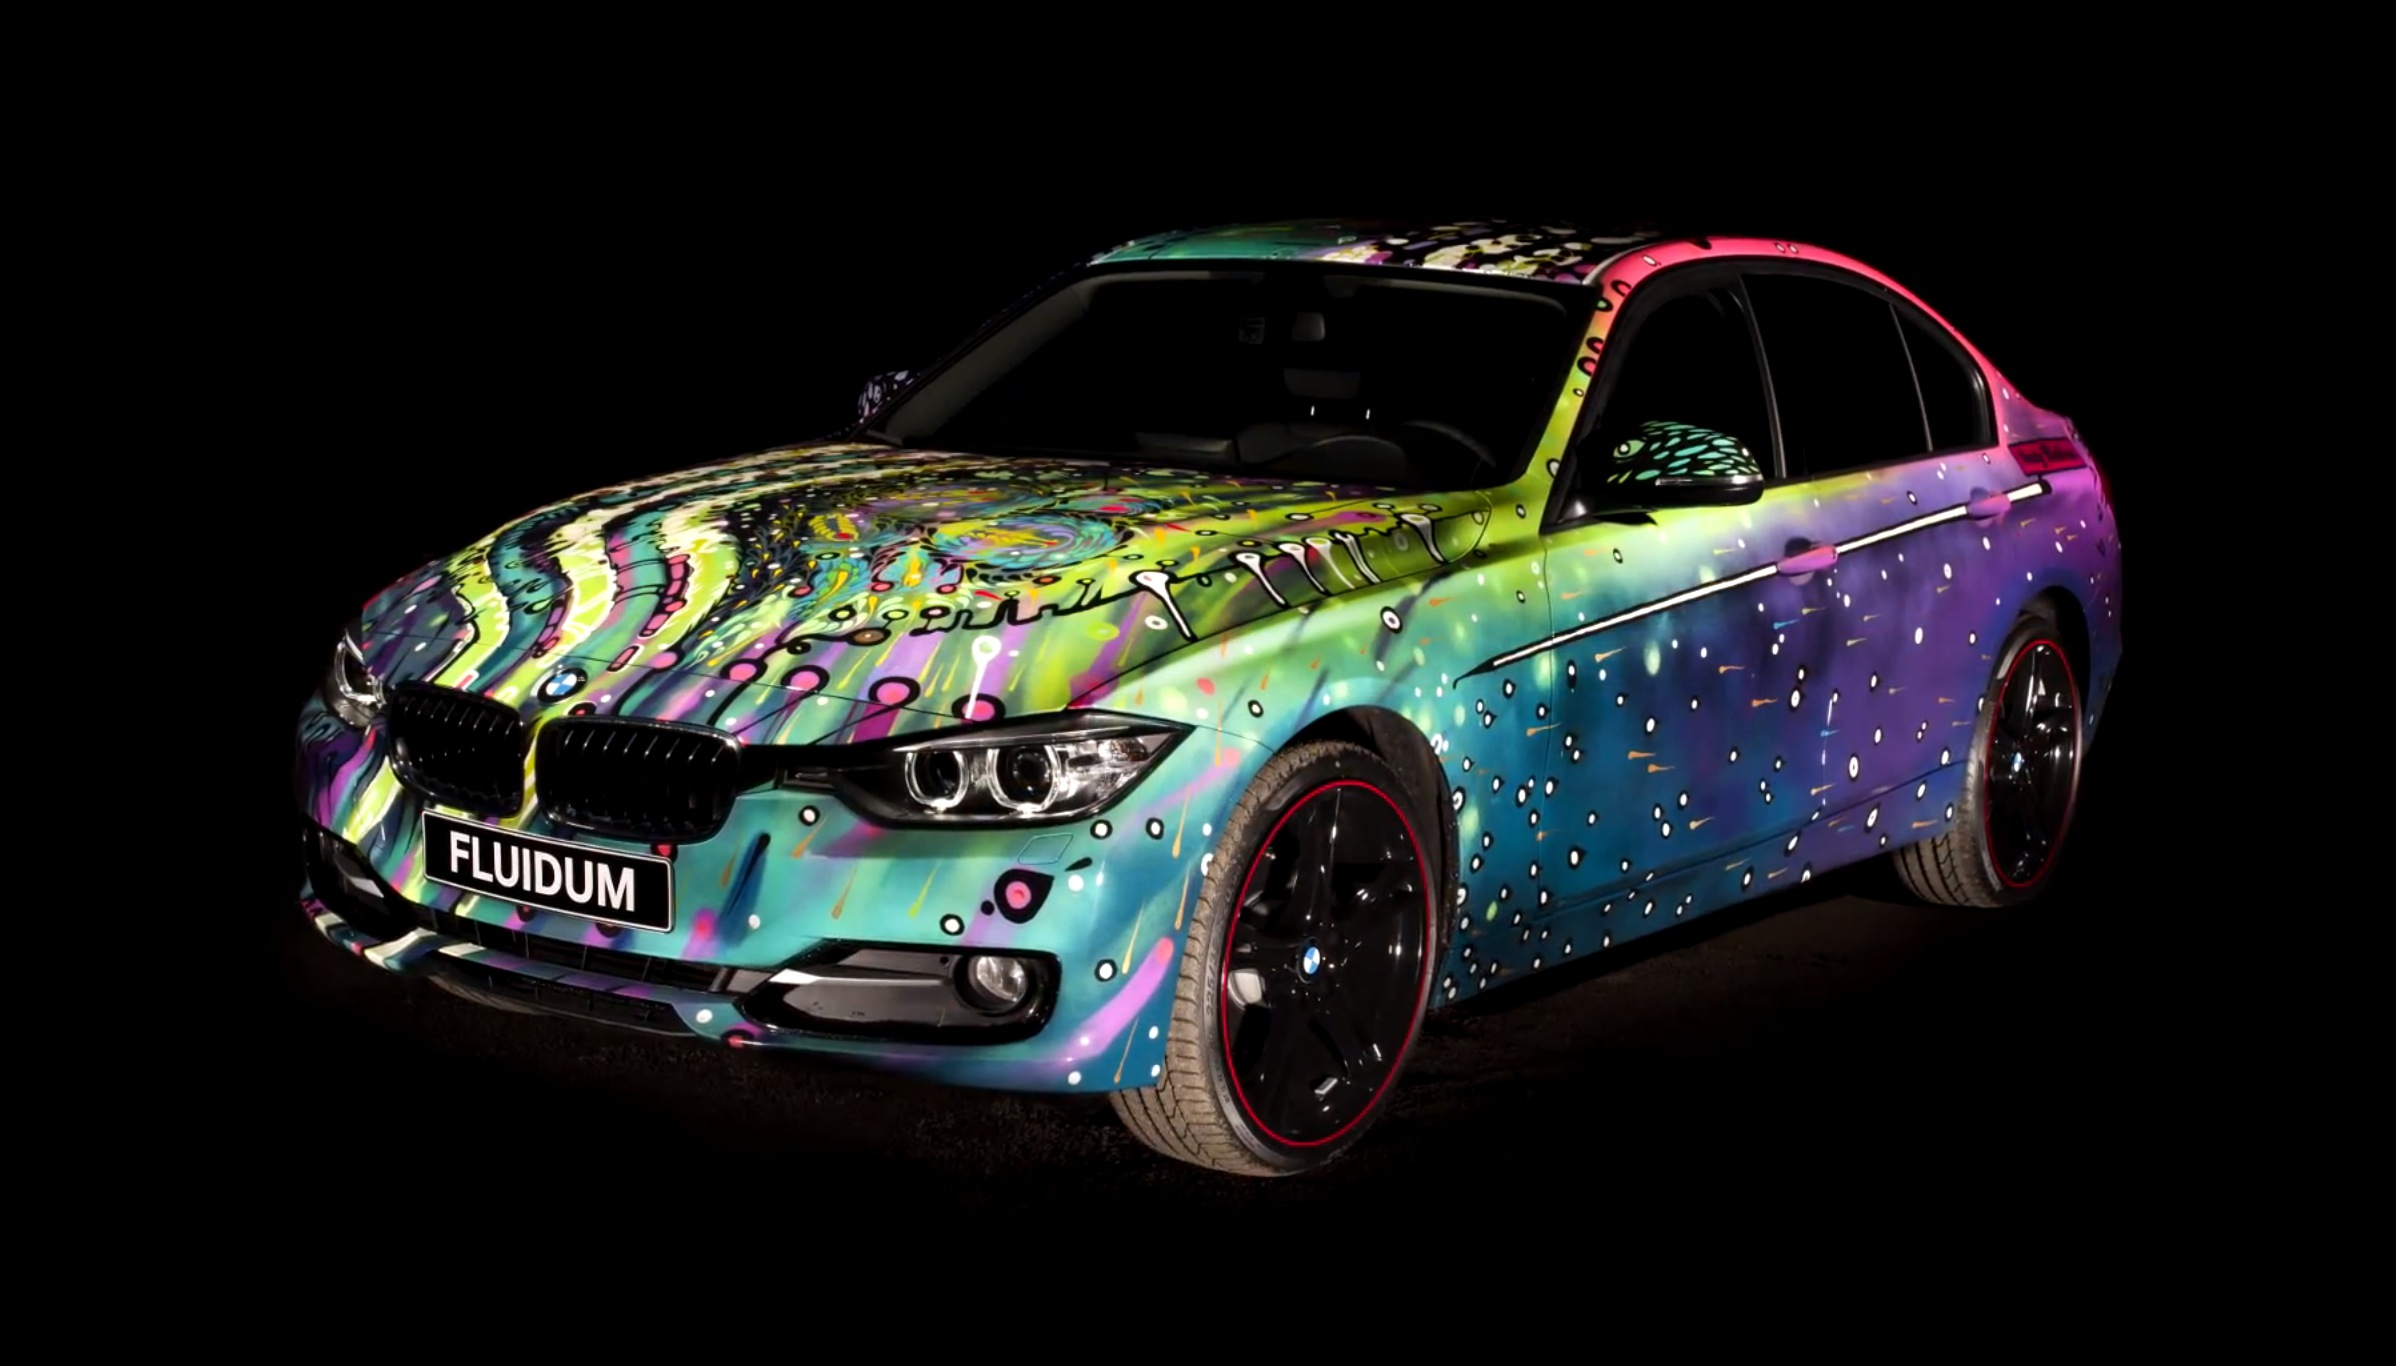 Bmw F30 3 Series Art Car Fluidum By Andy Reiben Page 2